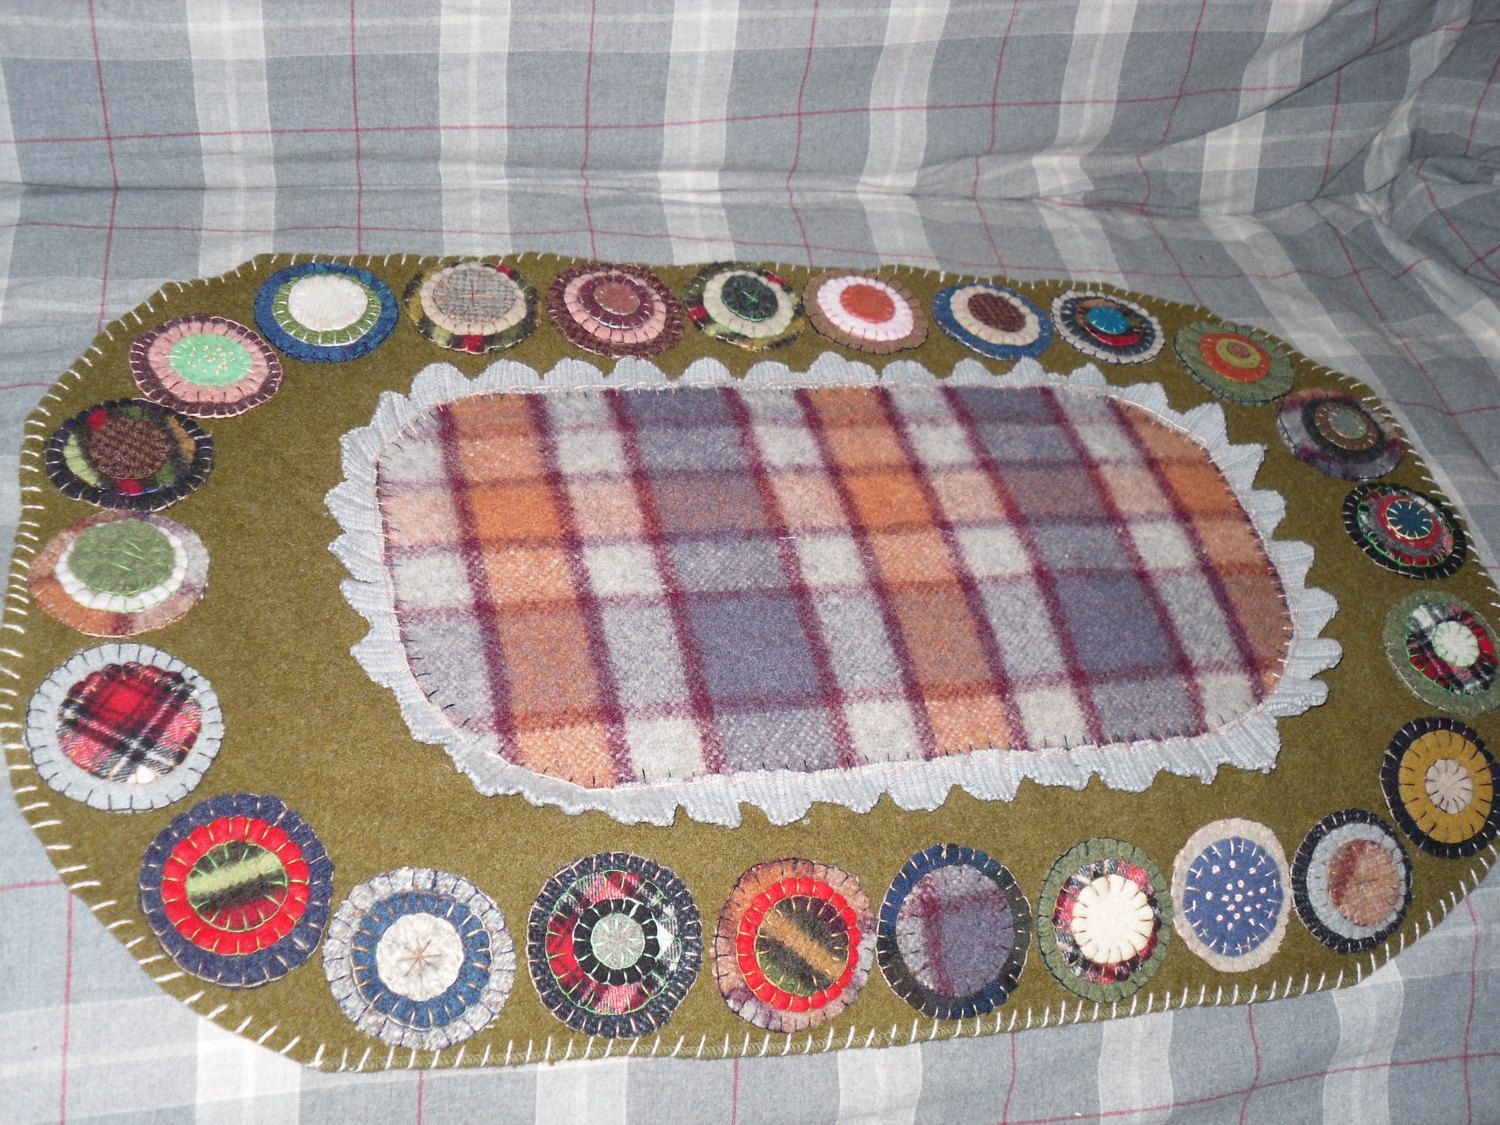 Folk art penny rug made from reclaimed wool sweaters and blankets